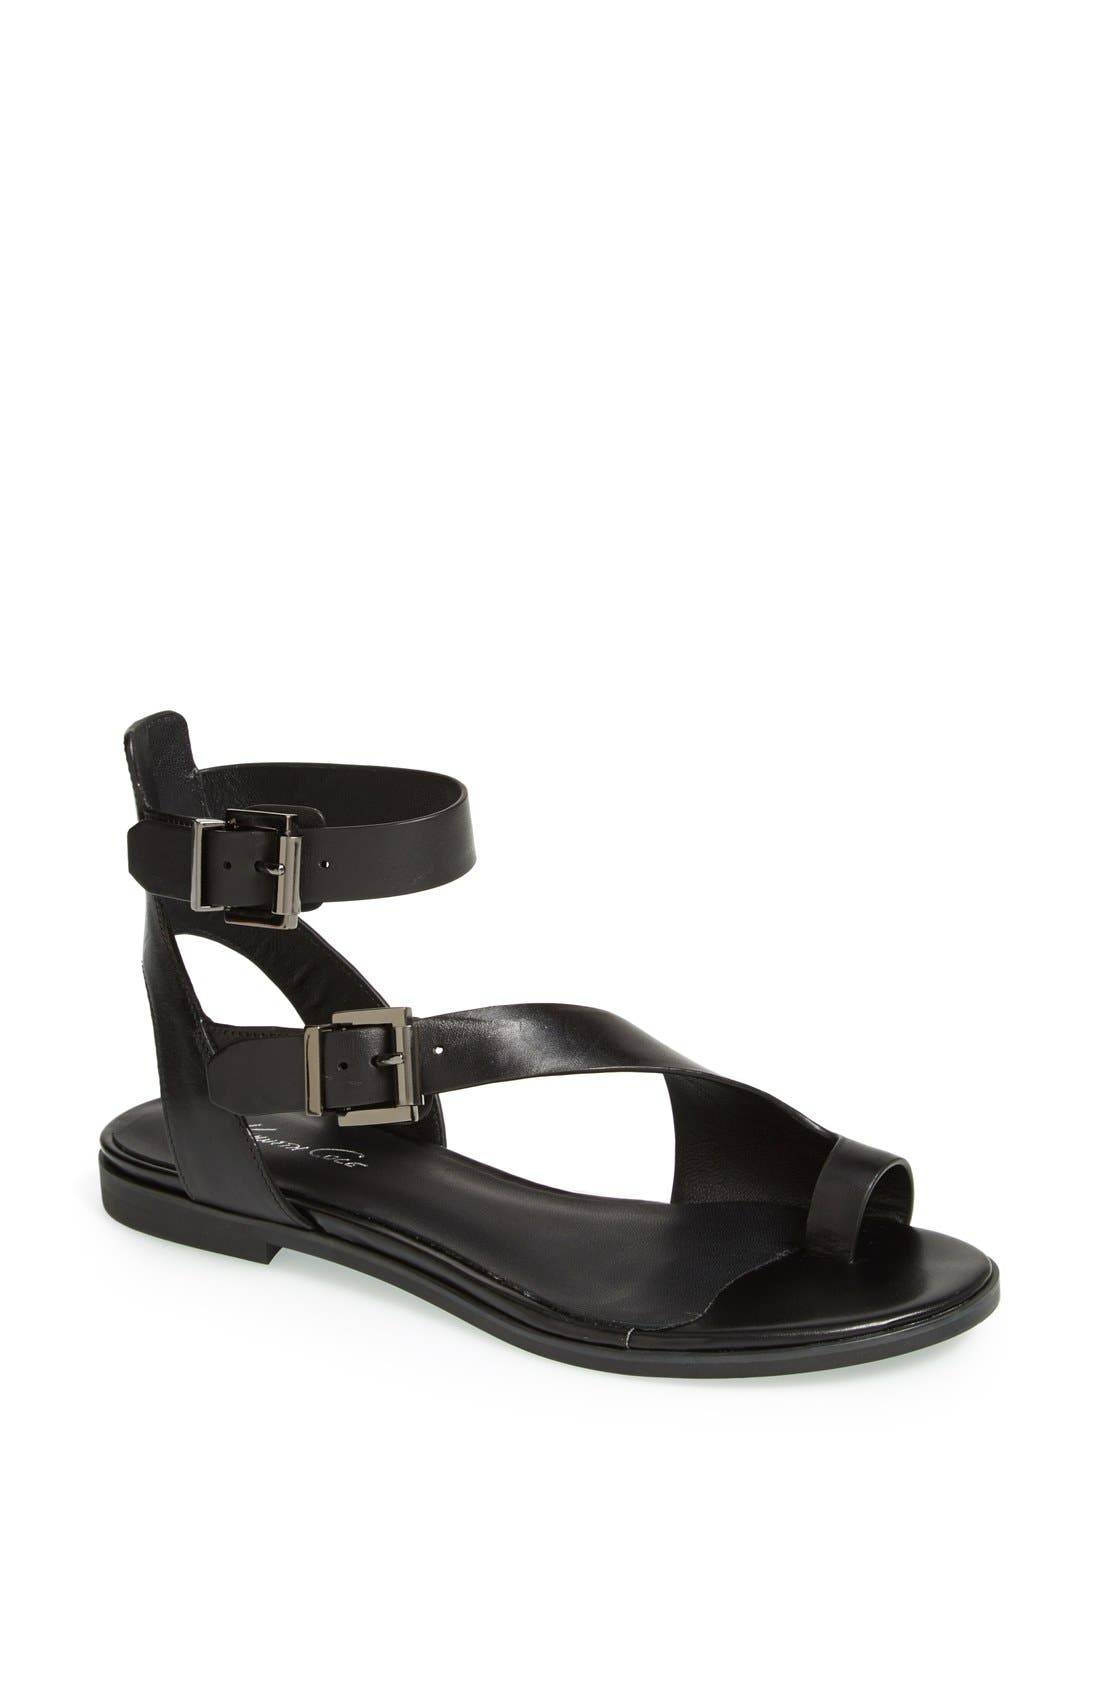 Alternate Image 1 Selected - Kenneth Cole 'Ditmas' Leather Sandal